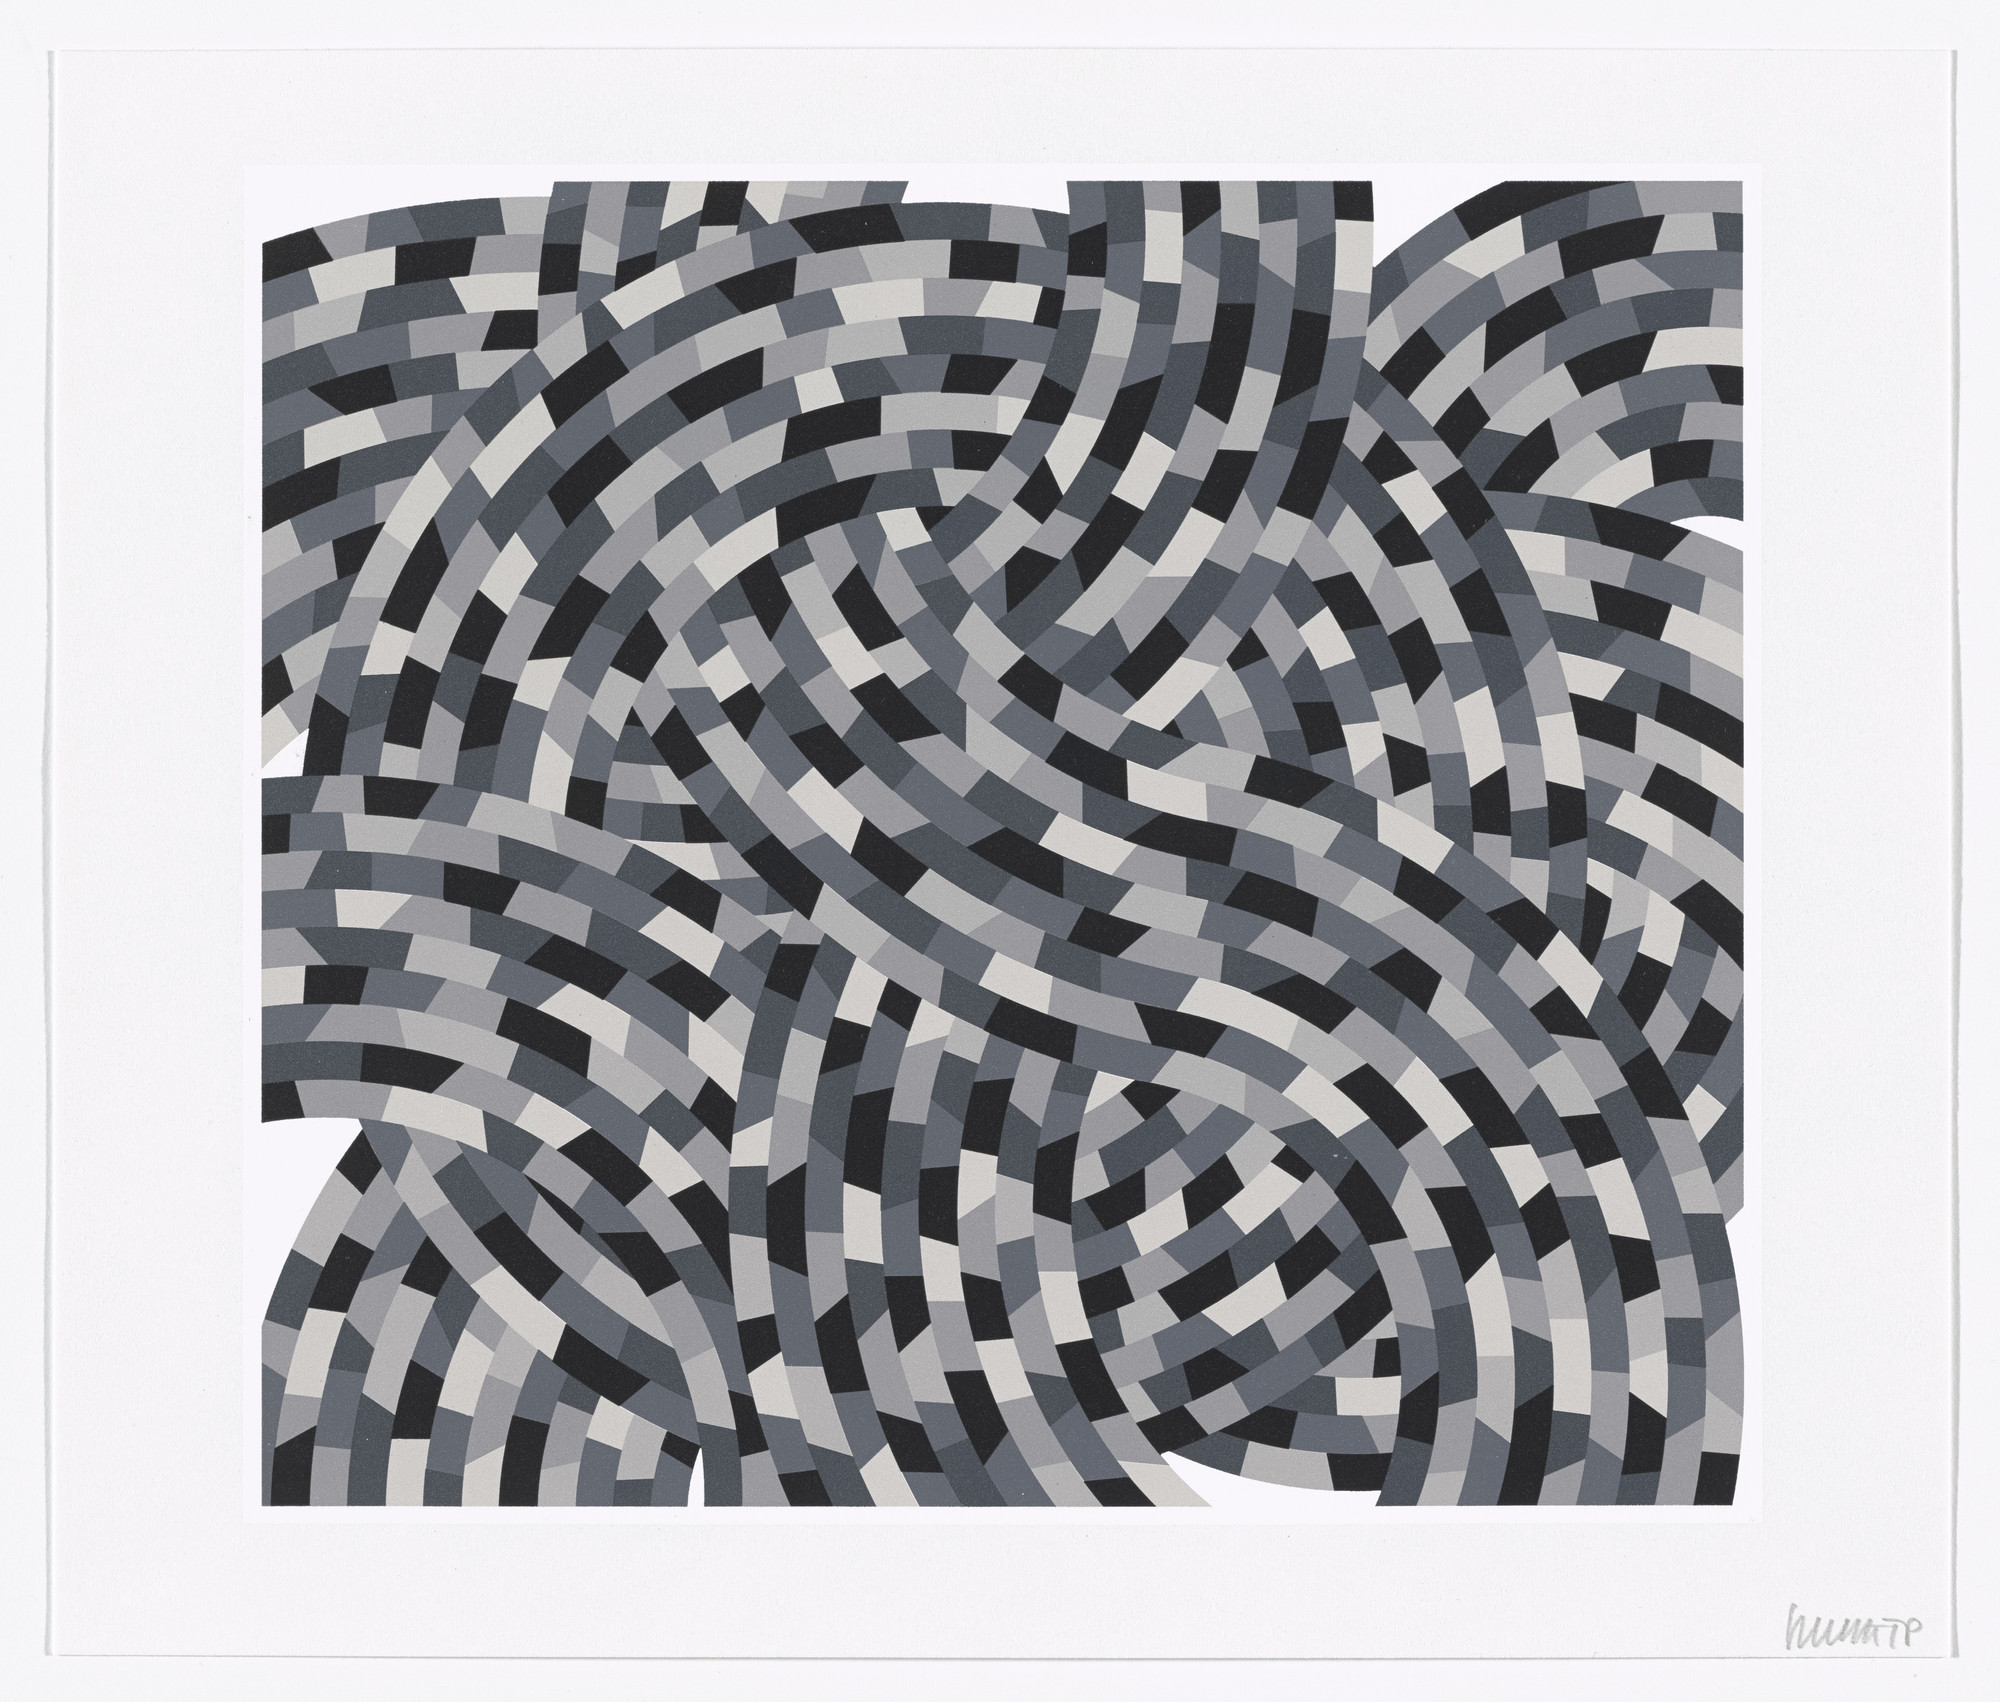 Sol LeWitt. Whirls and Twirls (Black and Grays). 2005